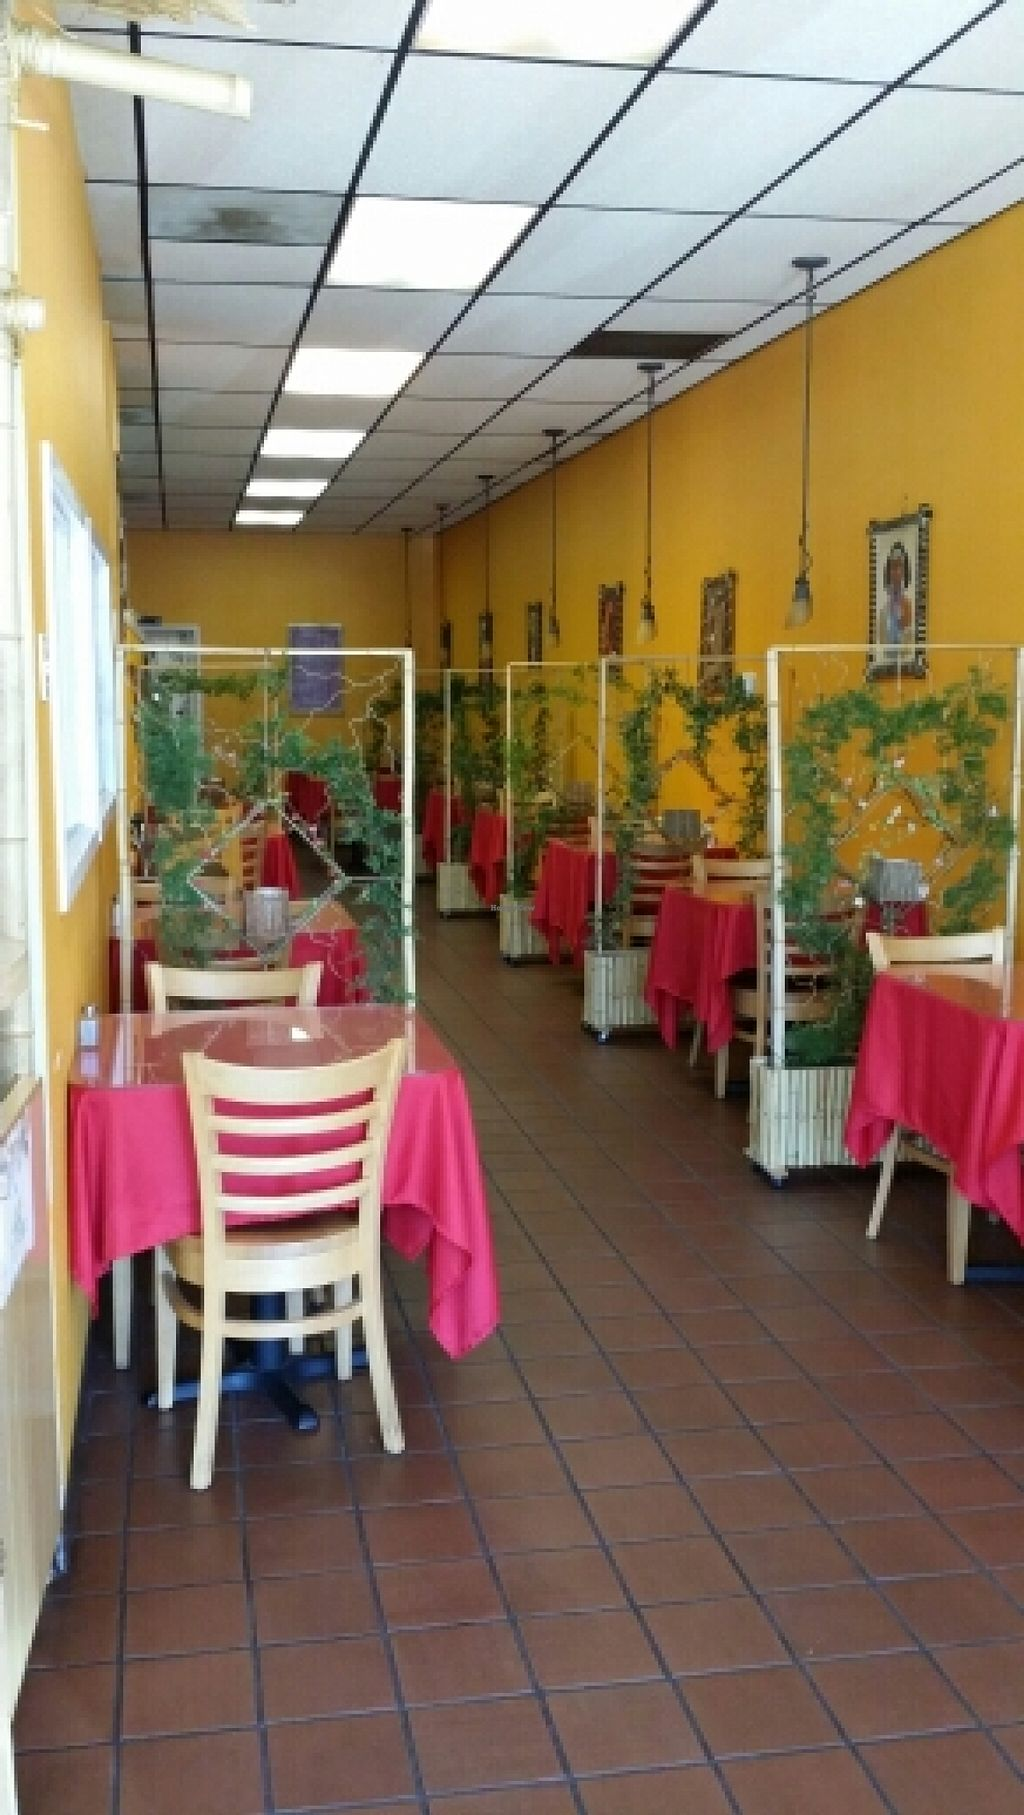 This is the adorable restaurant at abyssinia restaurant in santa rosa